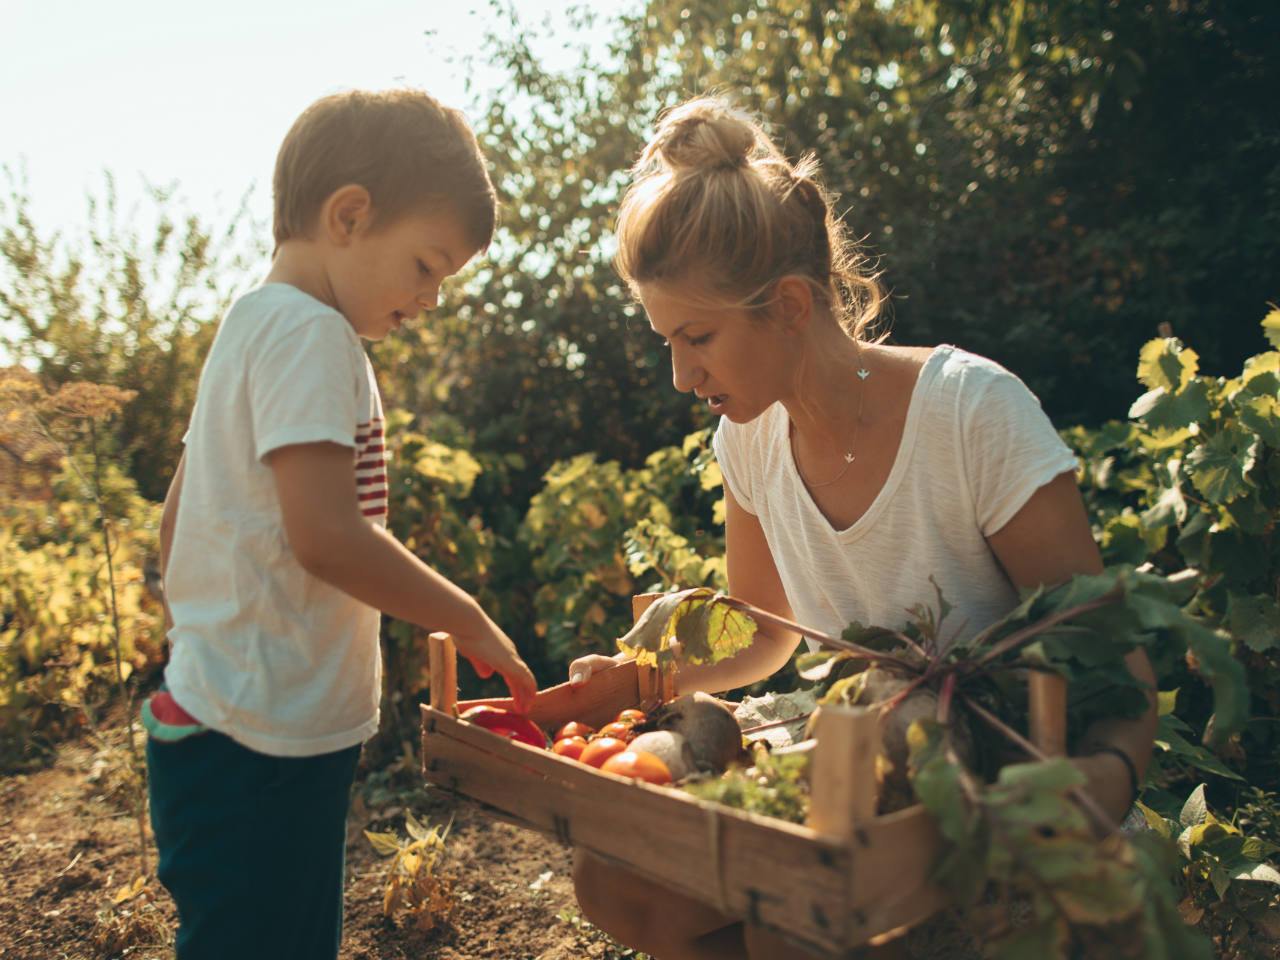 5 reasons gardening with kids gives them a healthy start